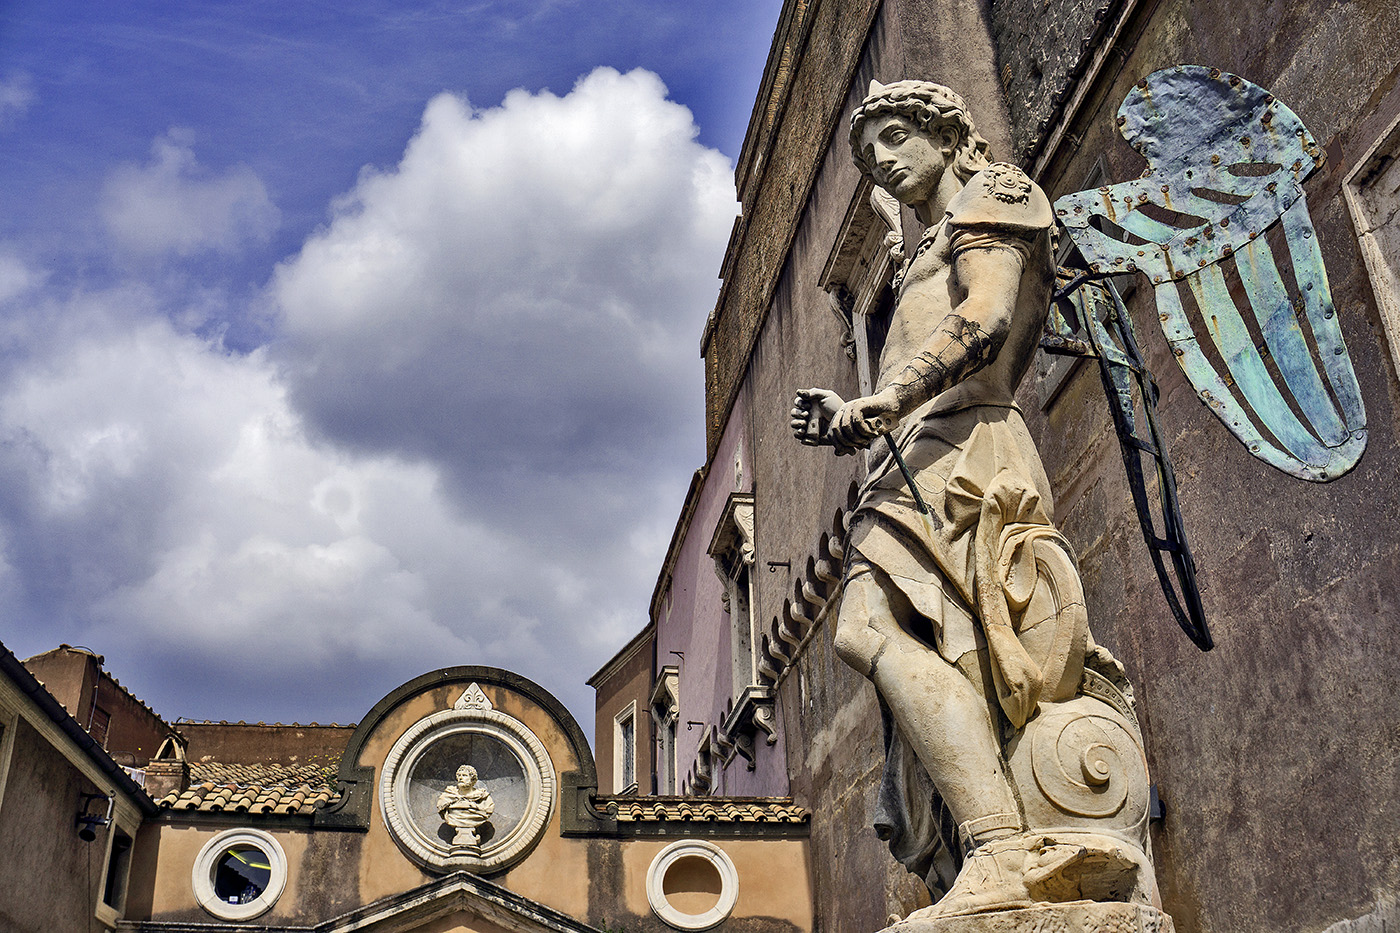 Statue of Archangel Michael by Michelangelo in Castel Sant'Angelo in Rome, Italy